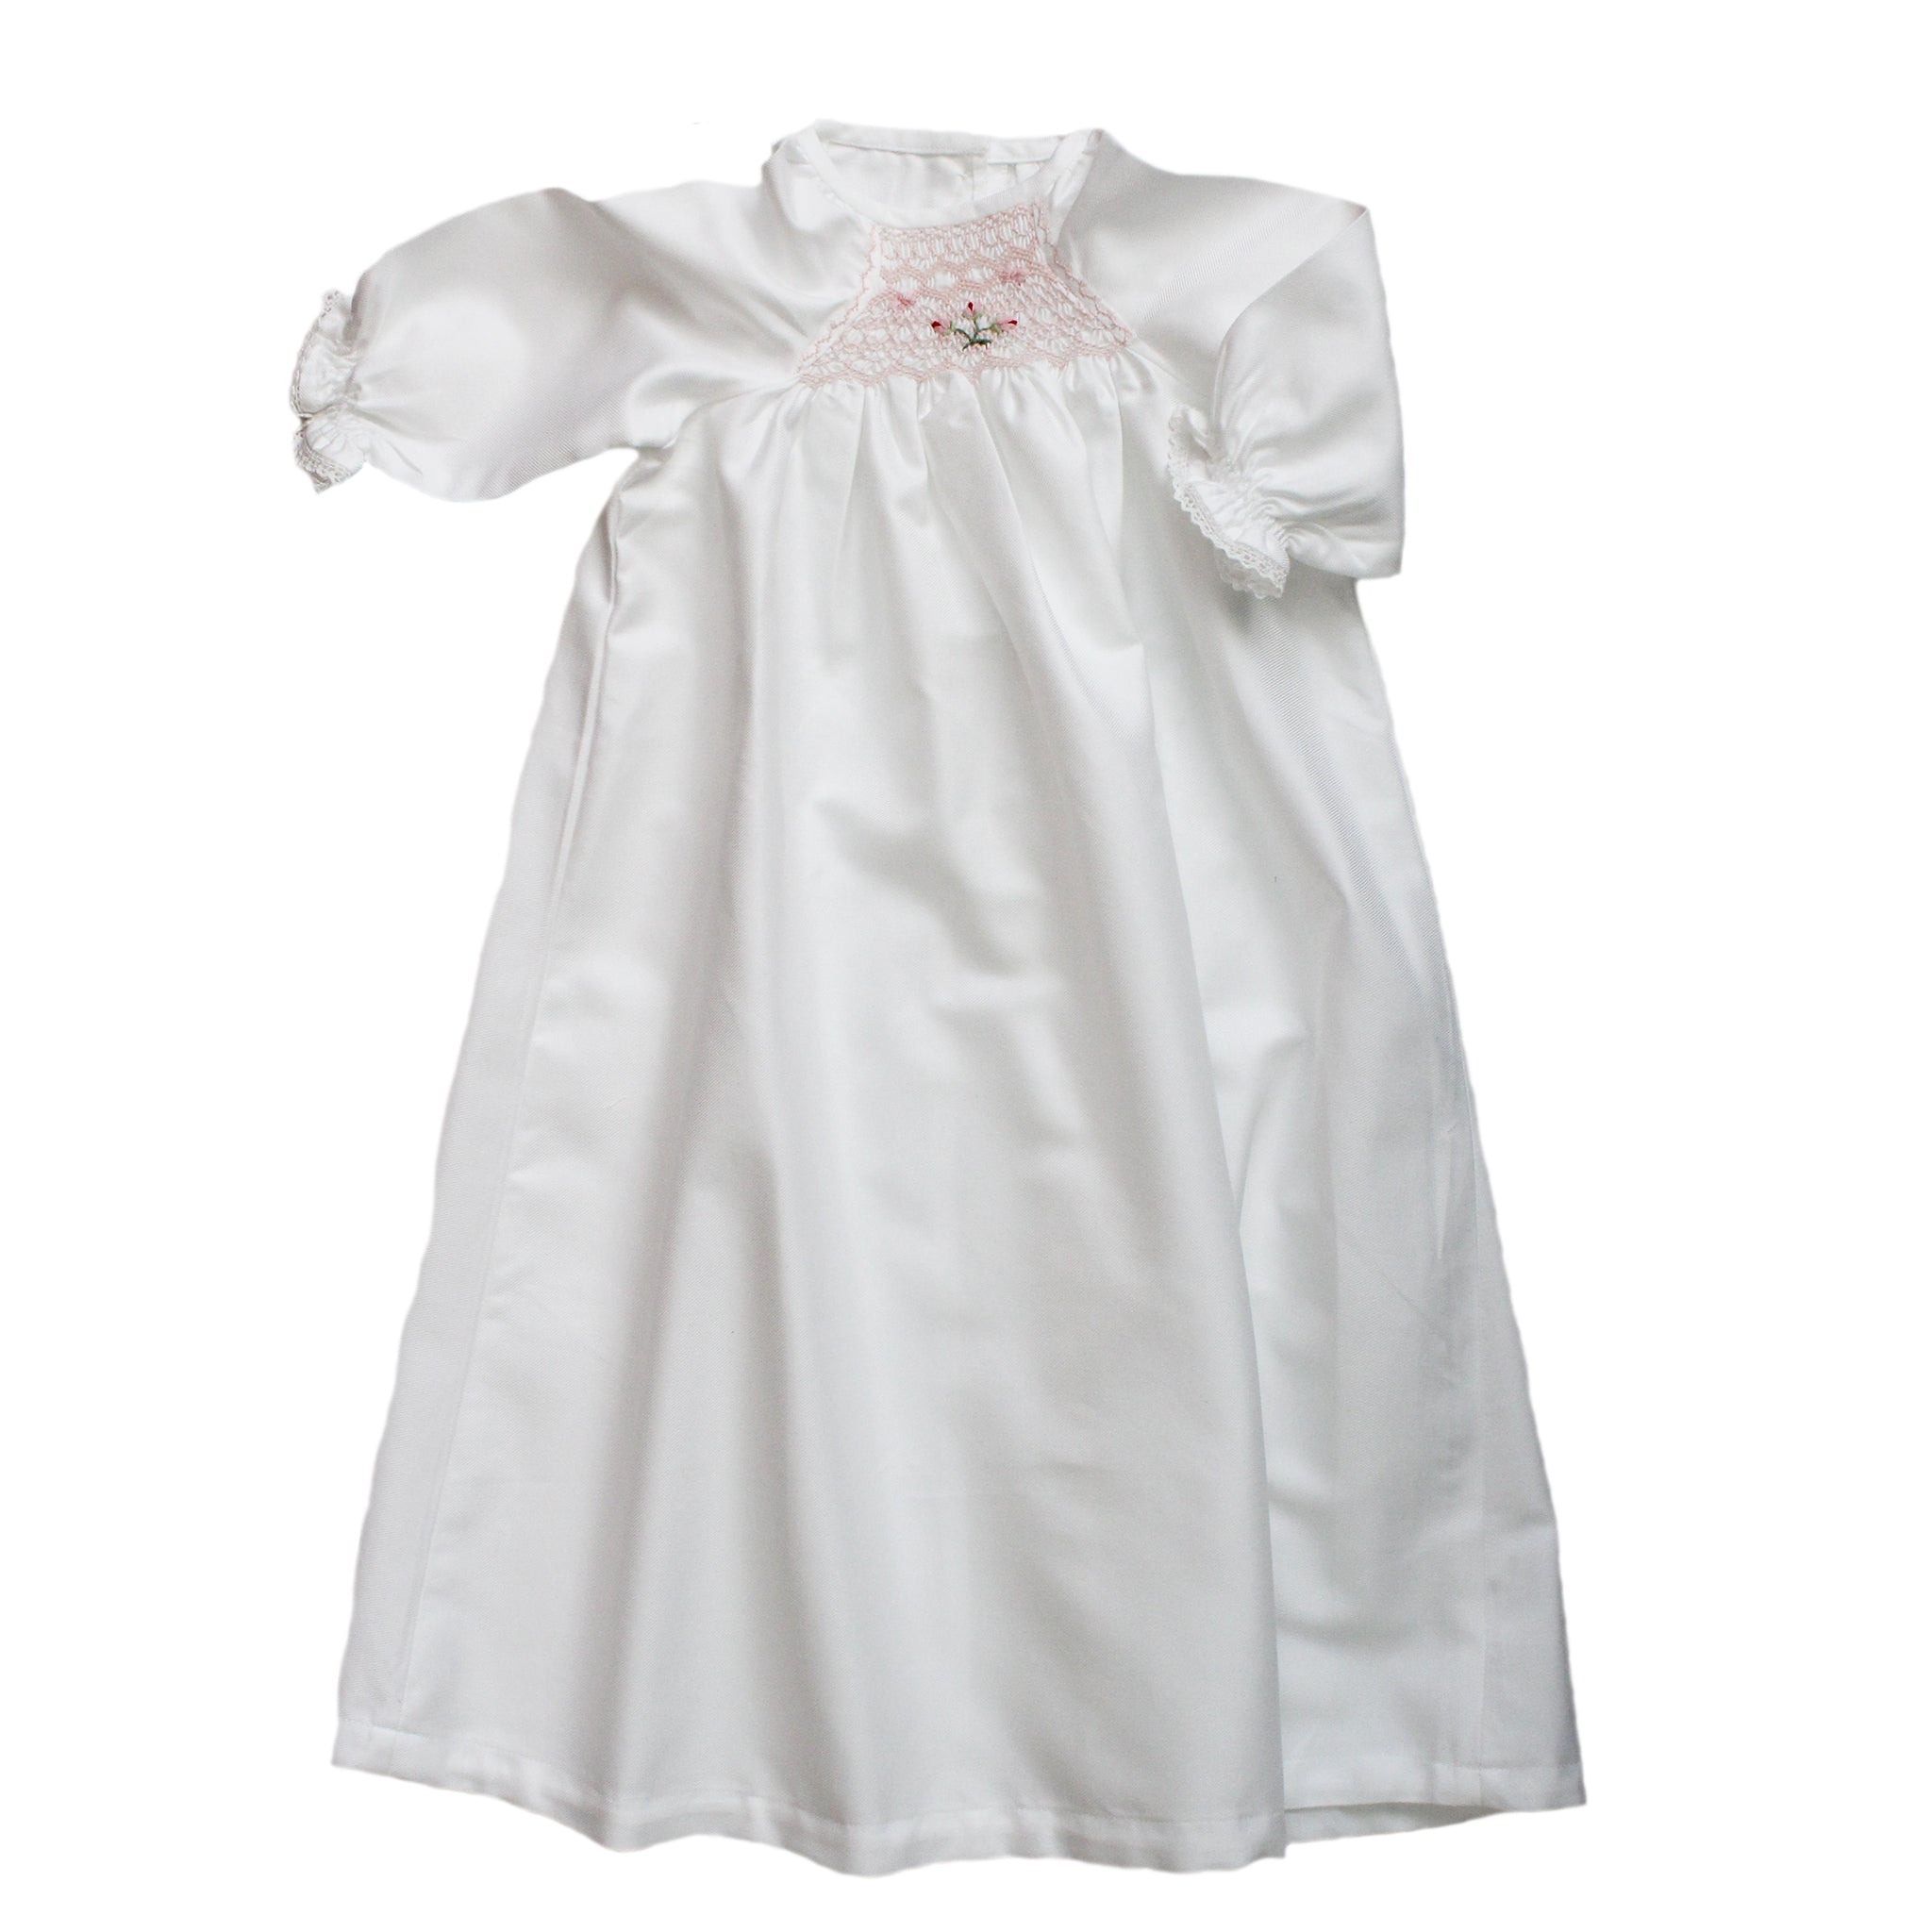 smocked baby gown with pink rosebuds